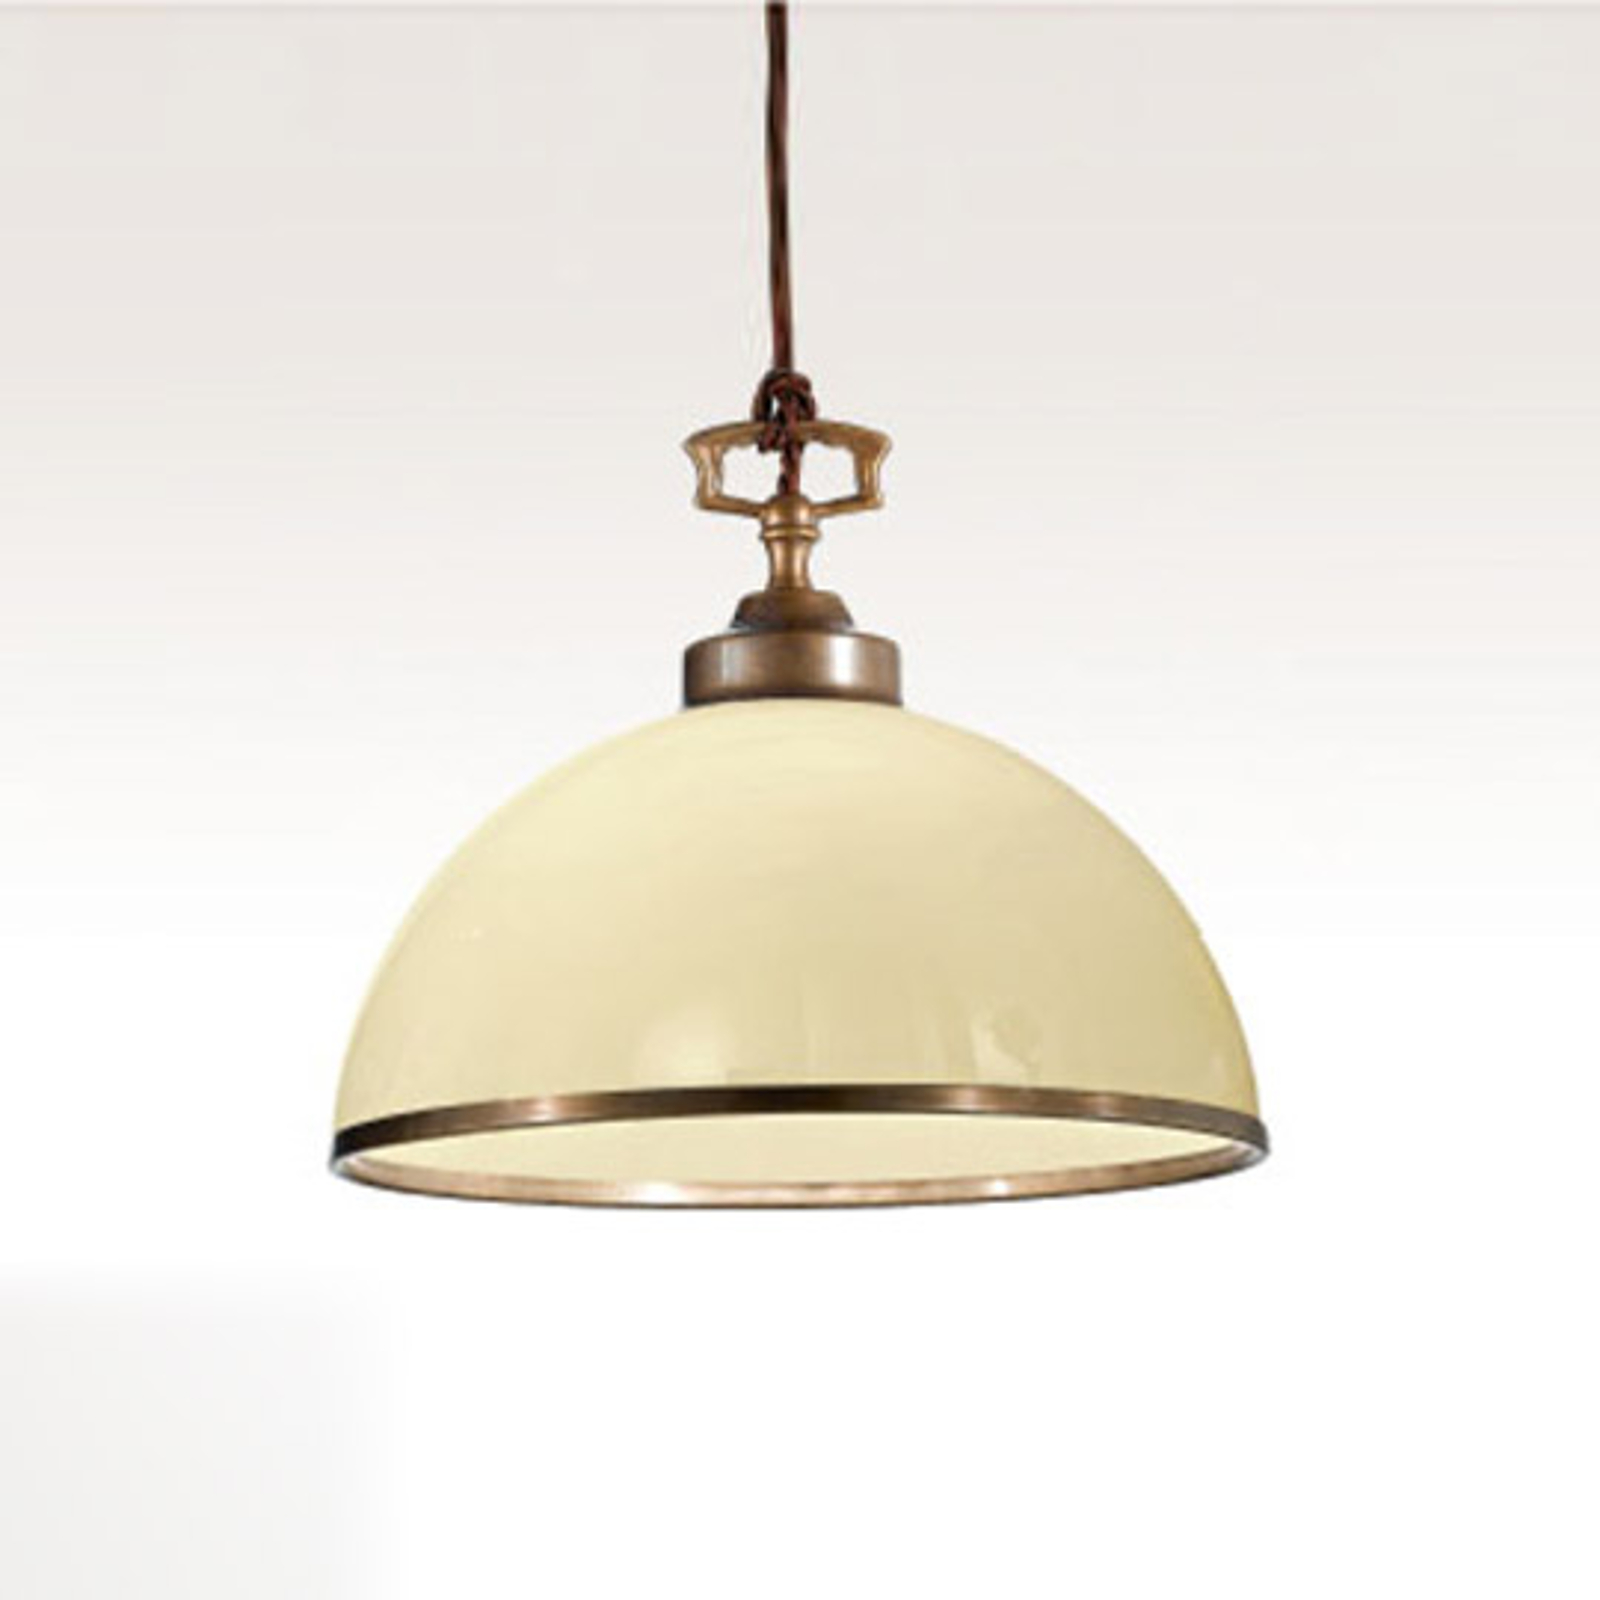 Stylish La Botte hanging light_2008064_1